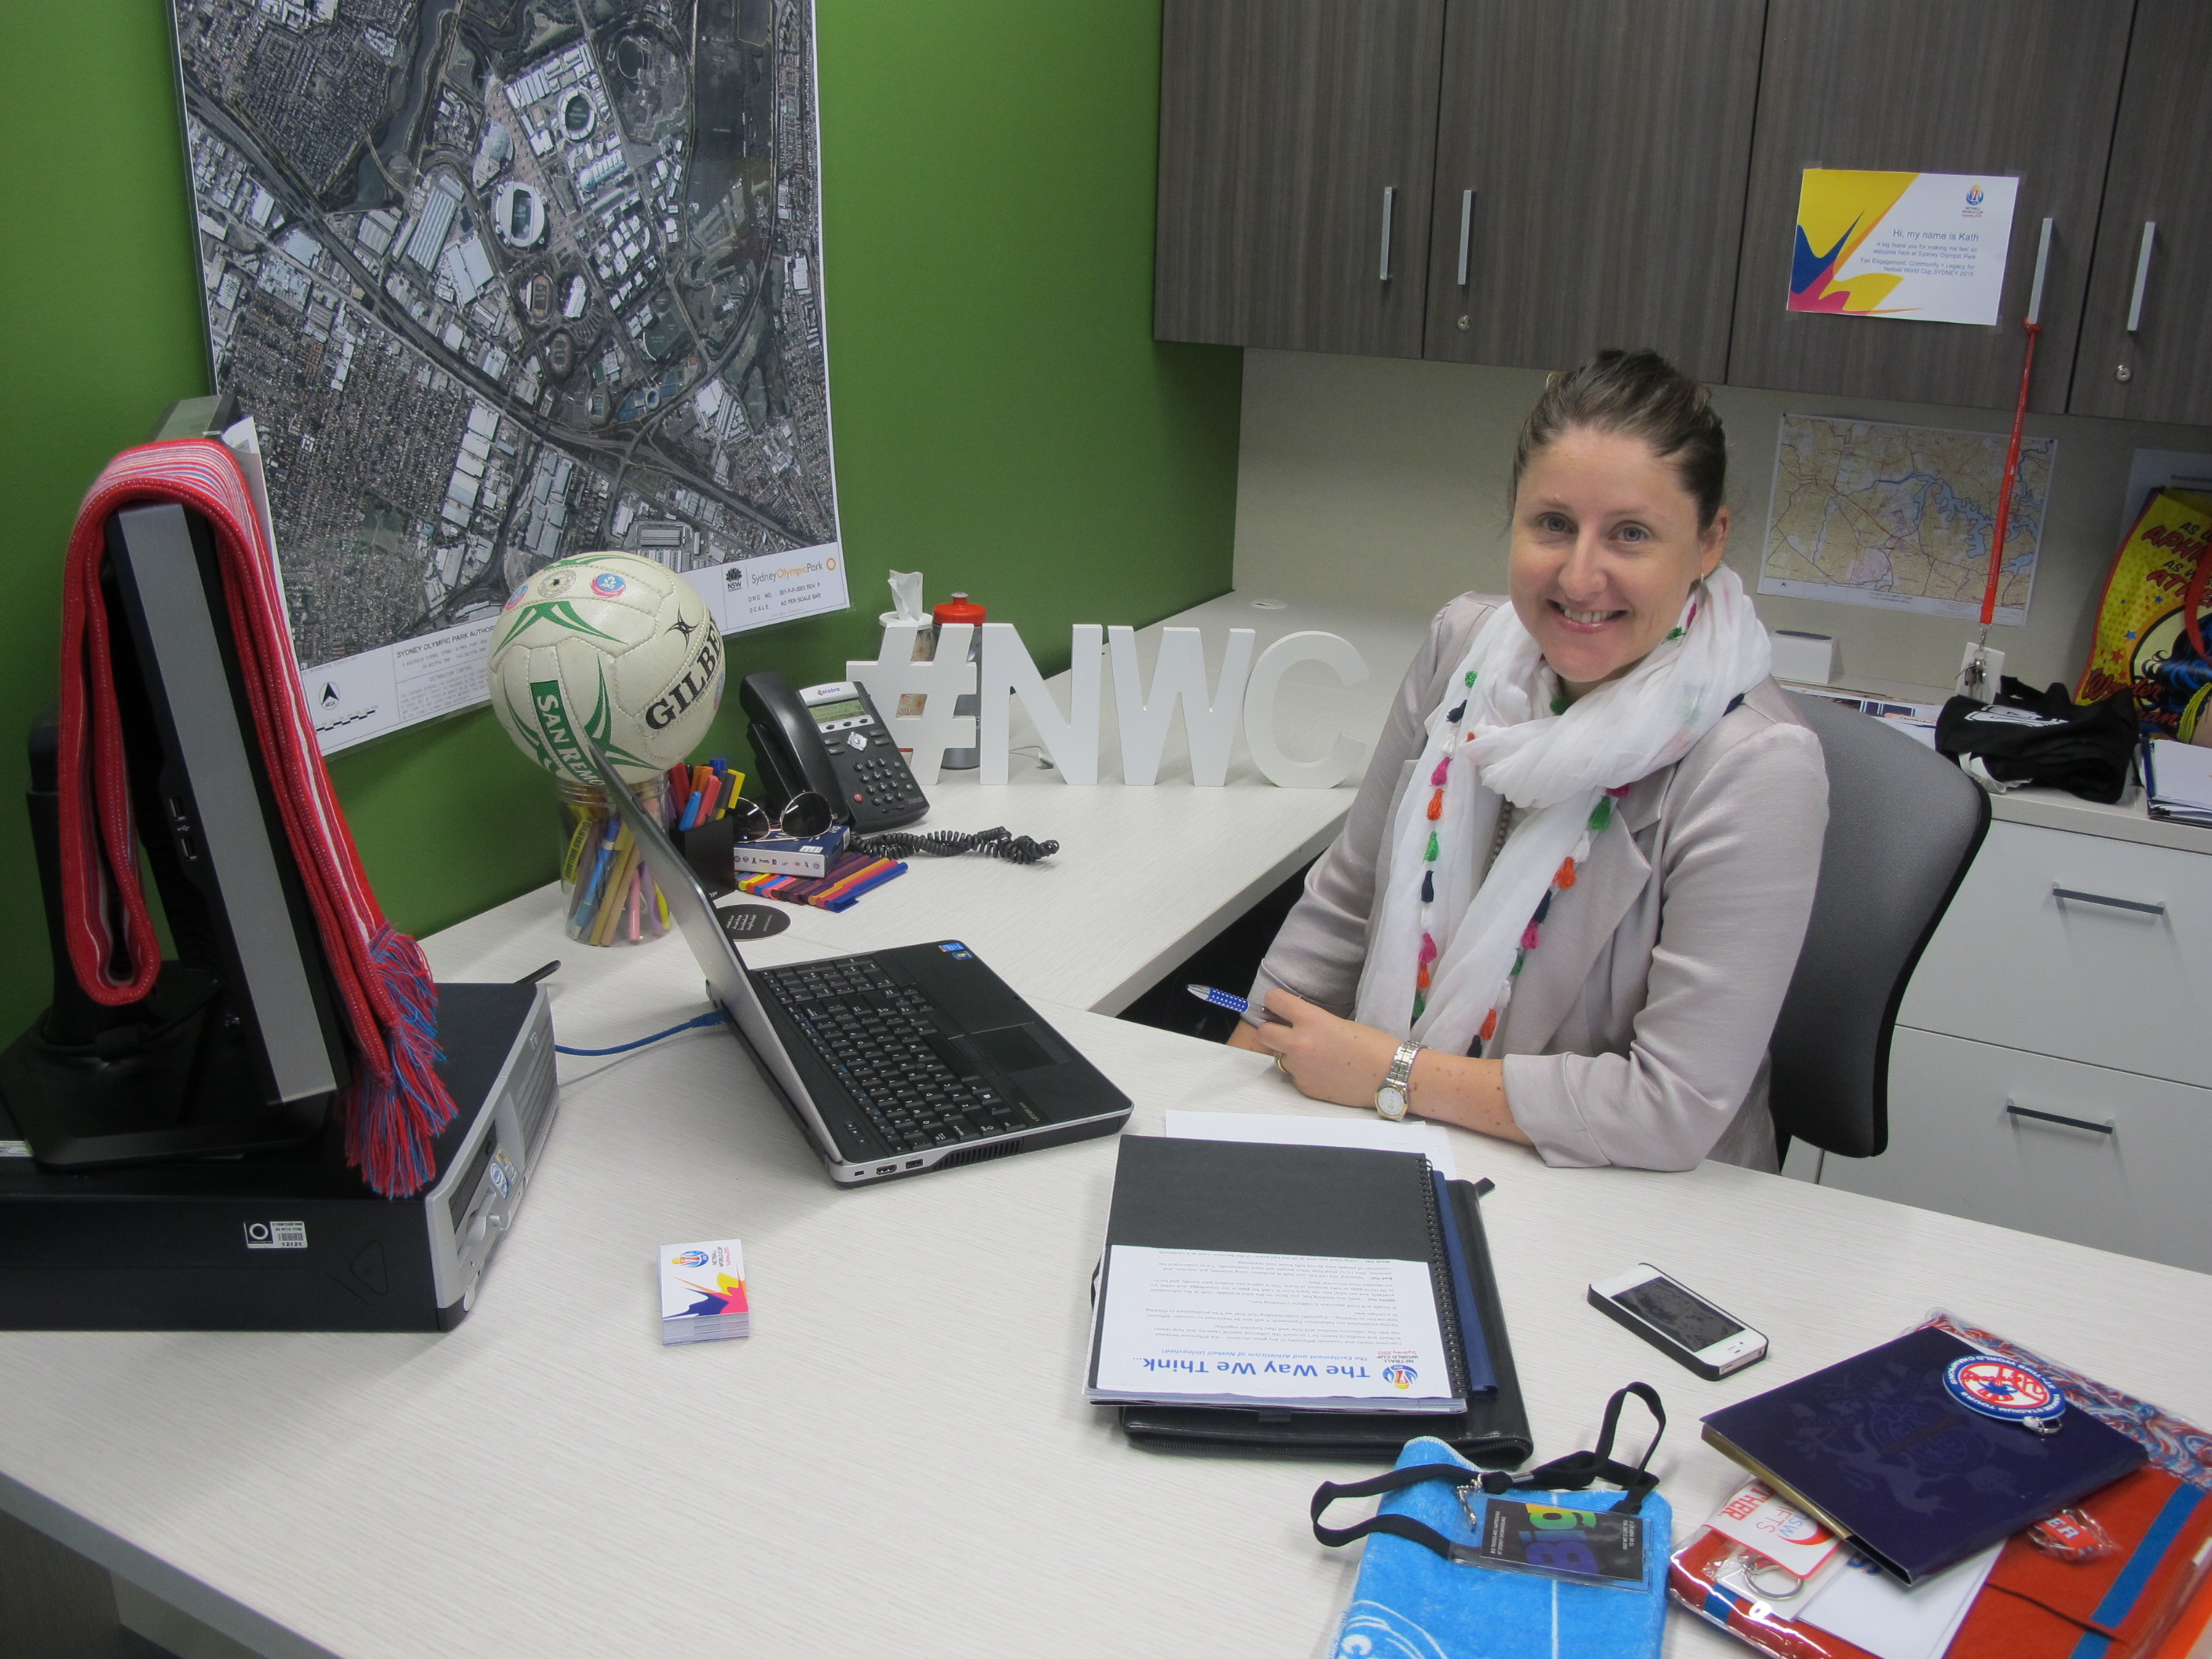 Kath Tetley Working Away At Her New Desk Sydney Olympic Park